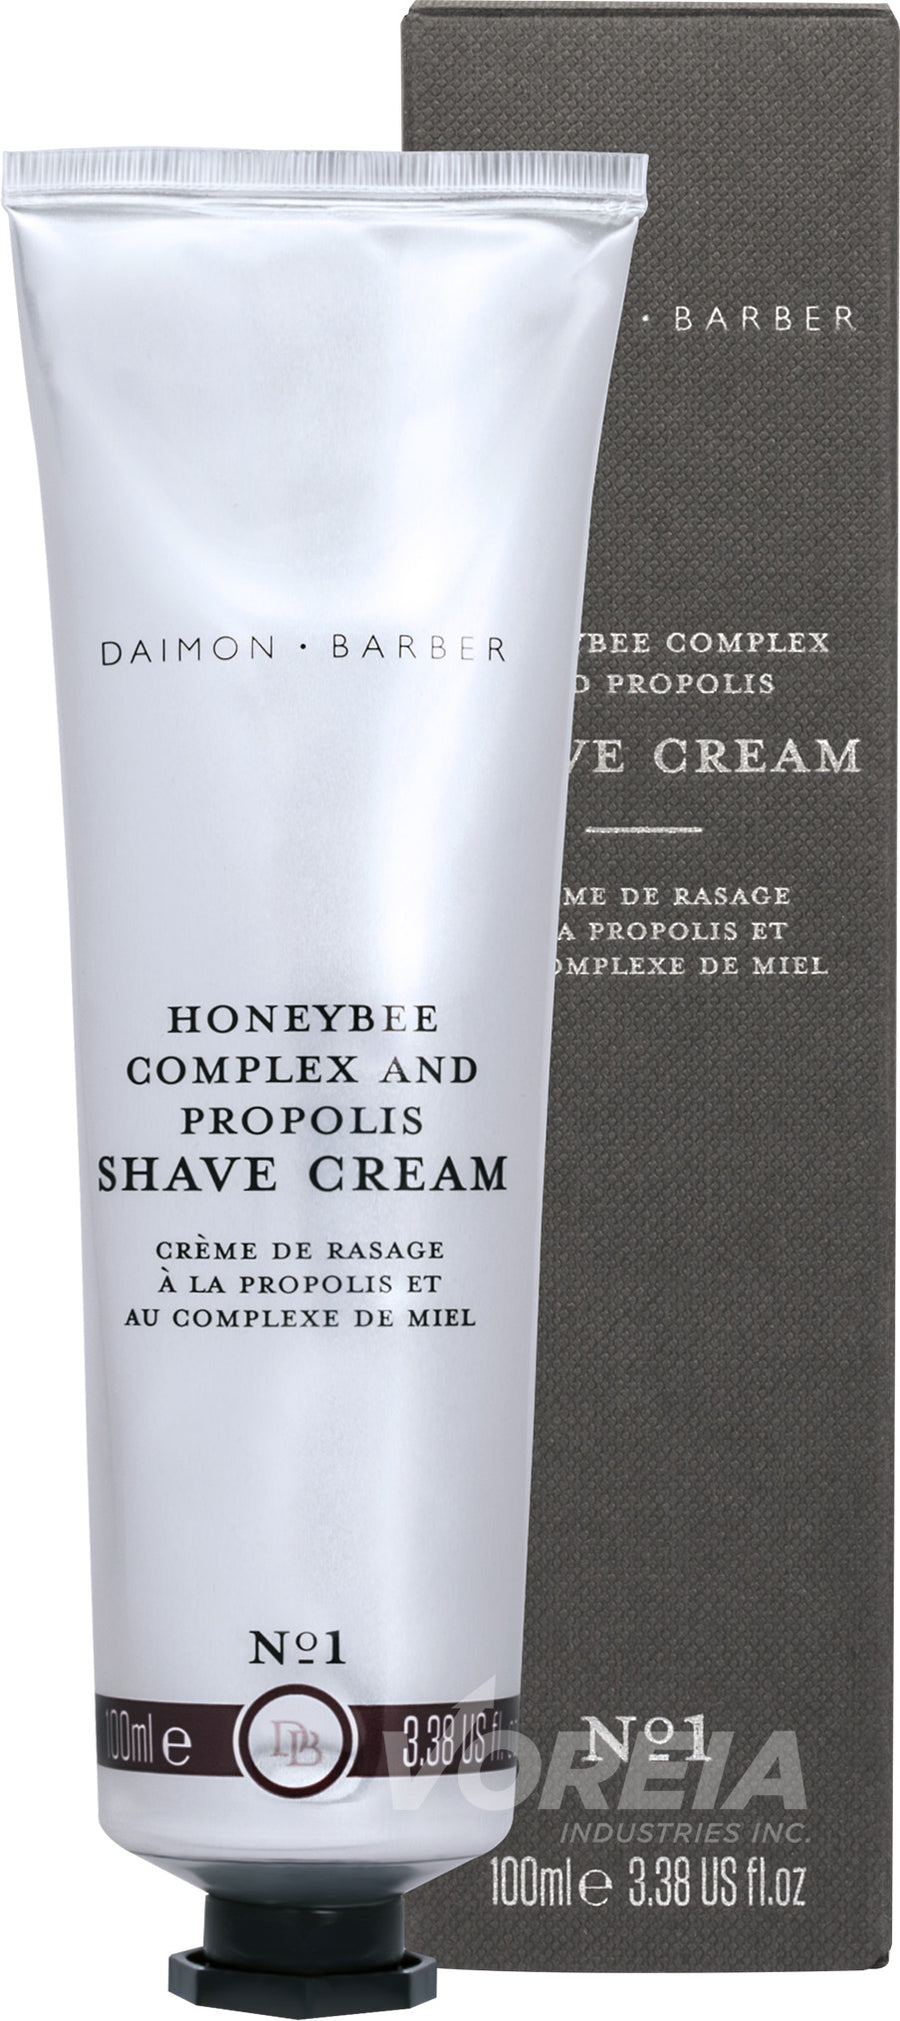 Daimon Barber Shave Cream 100ml